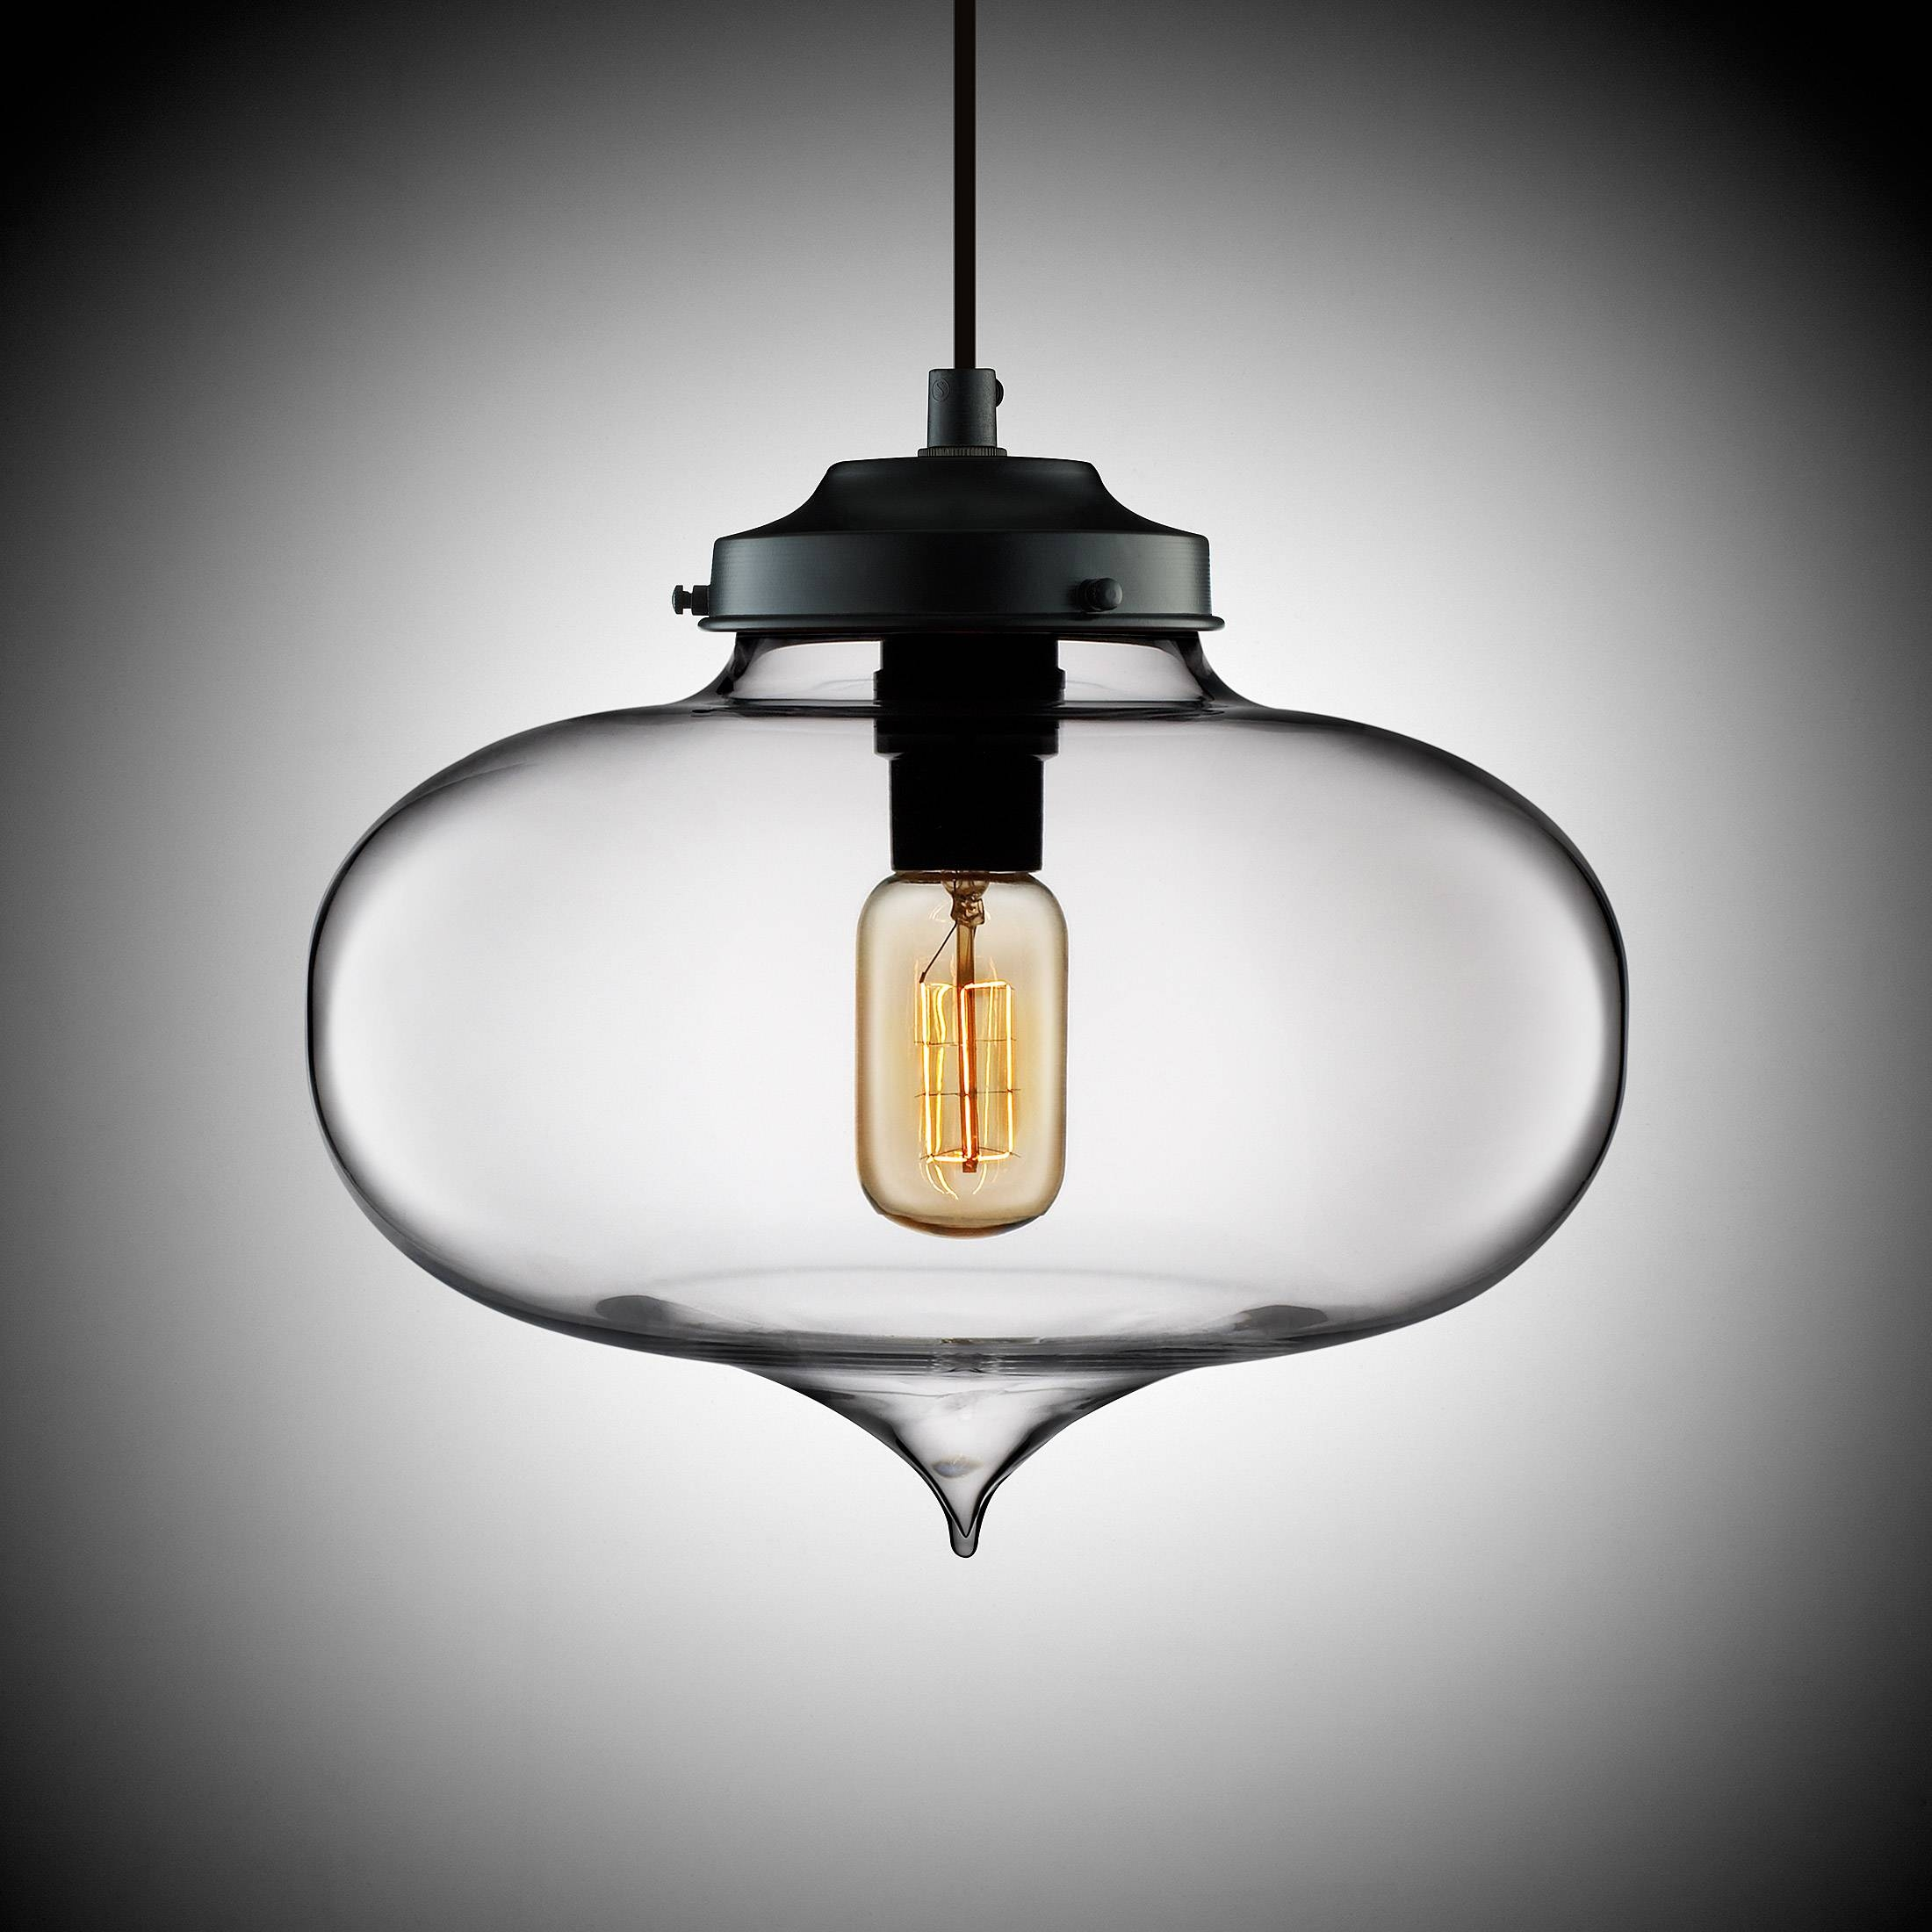 Free Modern Ceiling Lights Australia On With Hd Resolution with Contemporary Pendant Lights Australia (Image 9 of 15)